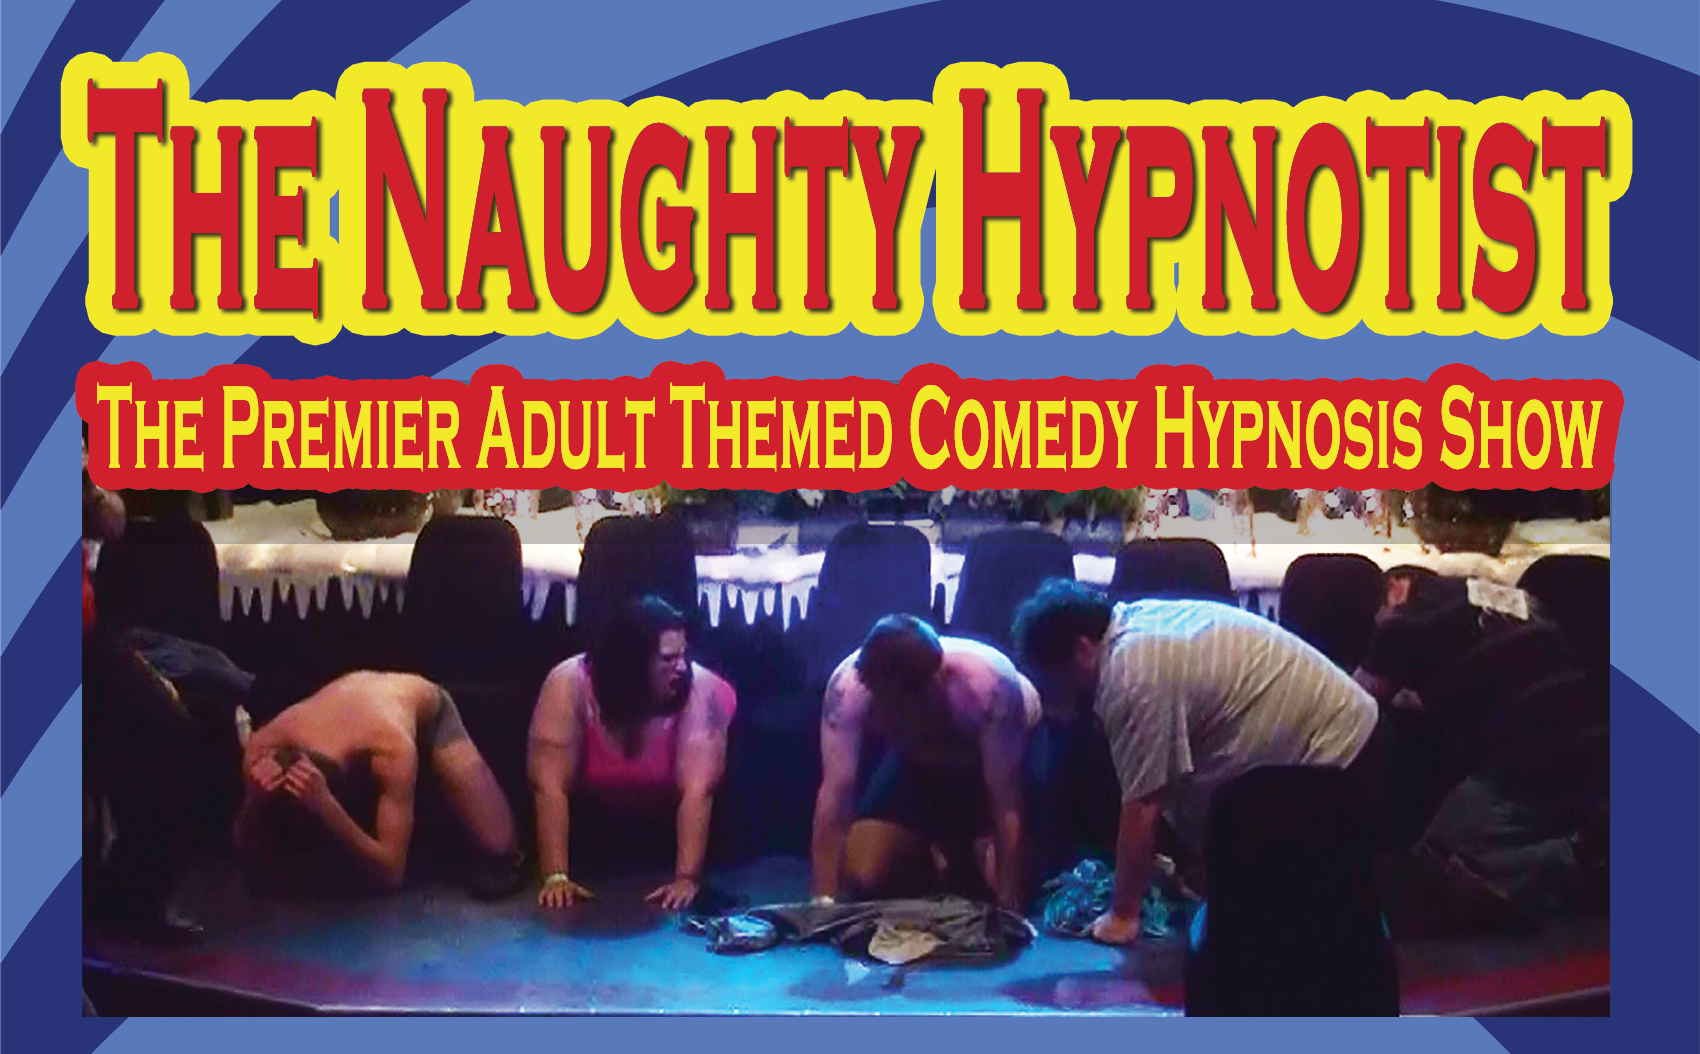 Dirty Hypnosis show - The Naughty Hypnotist The Premier Adult Themed Comedy Hypnosis Show